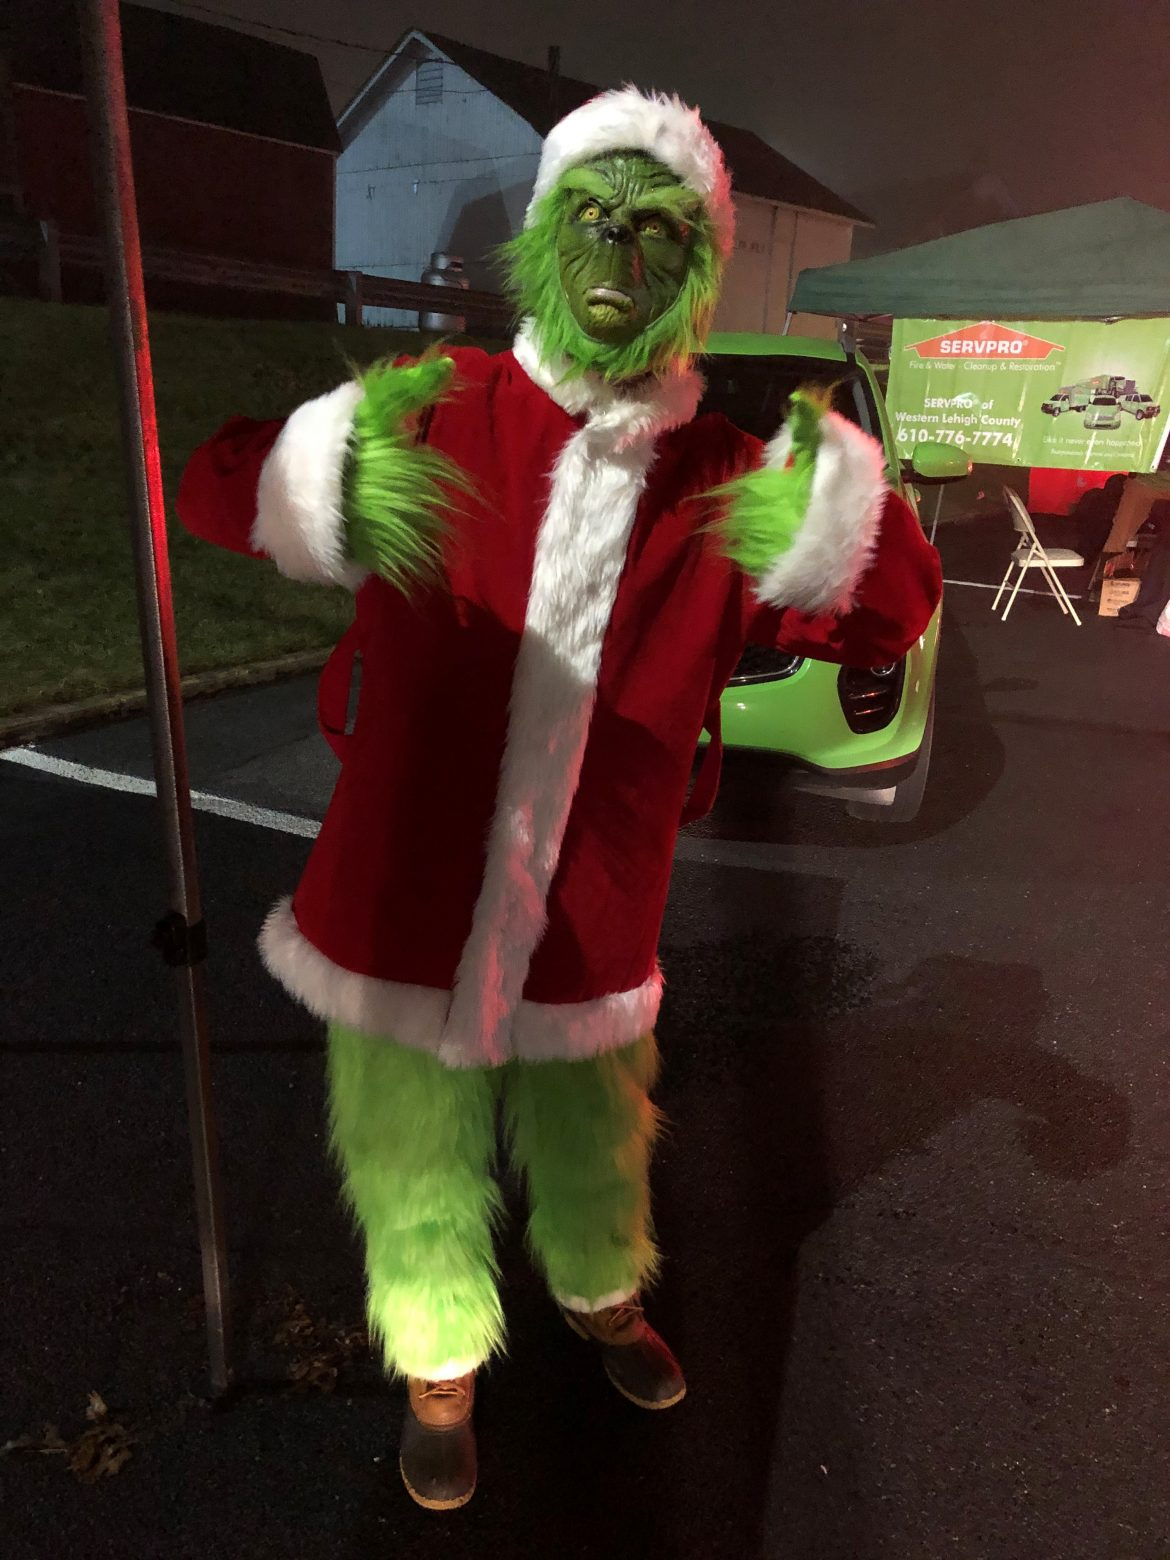 The Grinch Coopersburg Holiday Drive-Thru